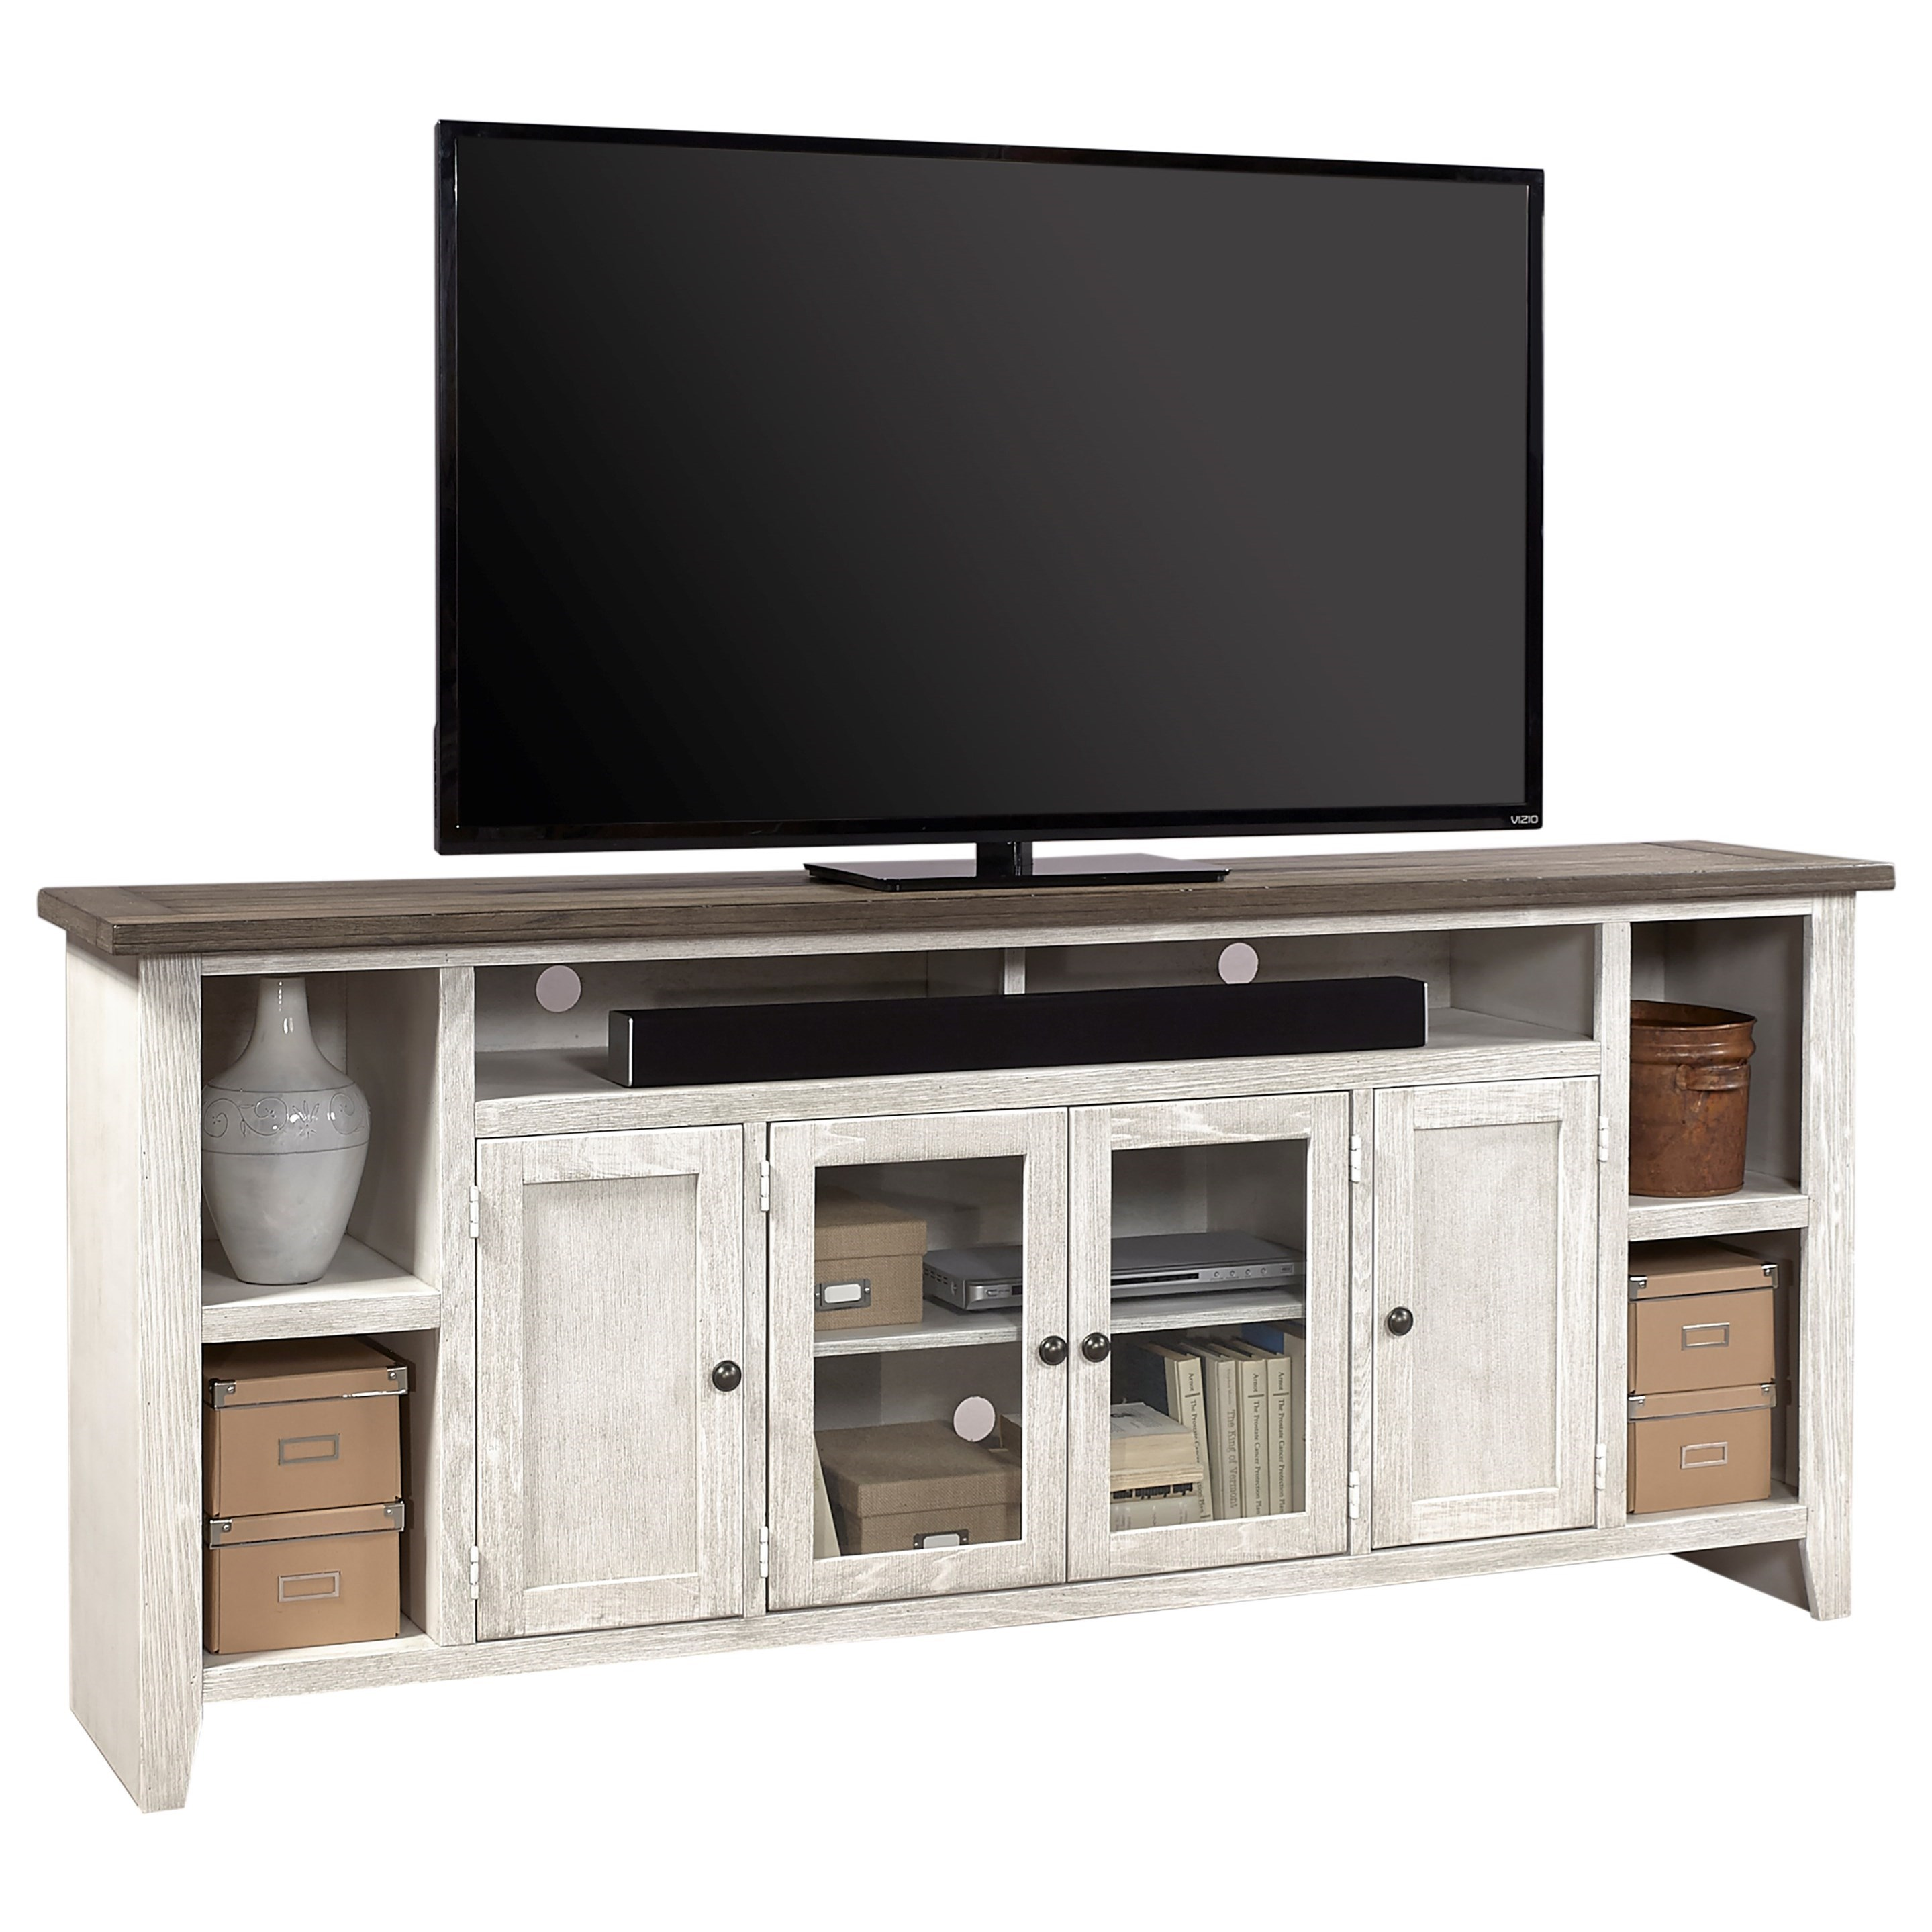 "Eastport 84"" Console by Aspenhome at Walker's Furniture"